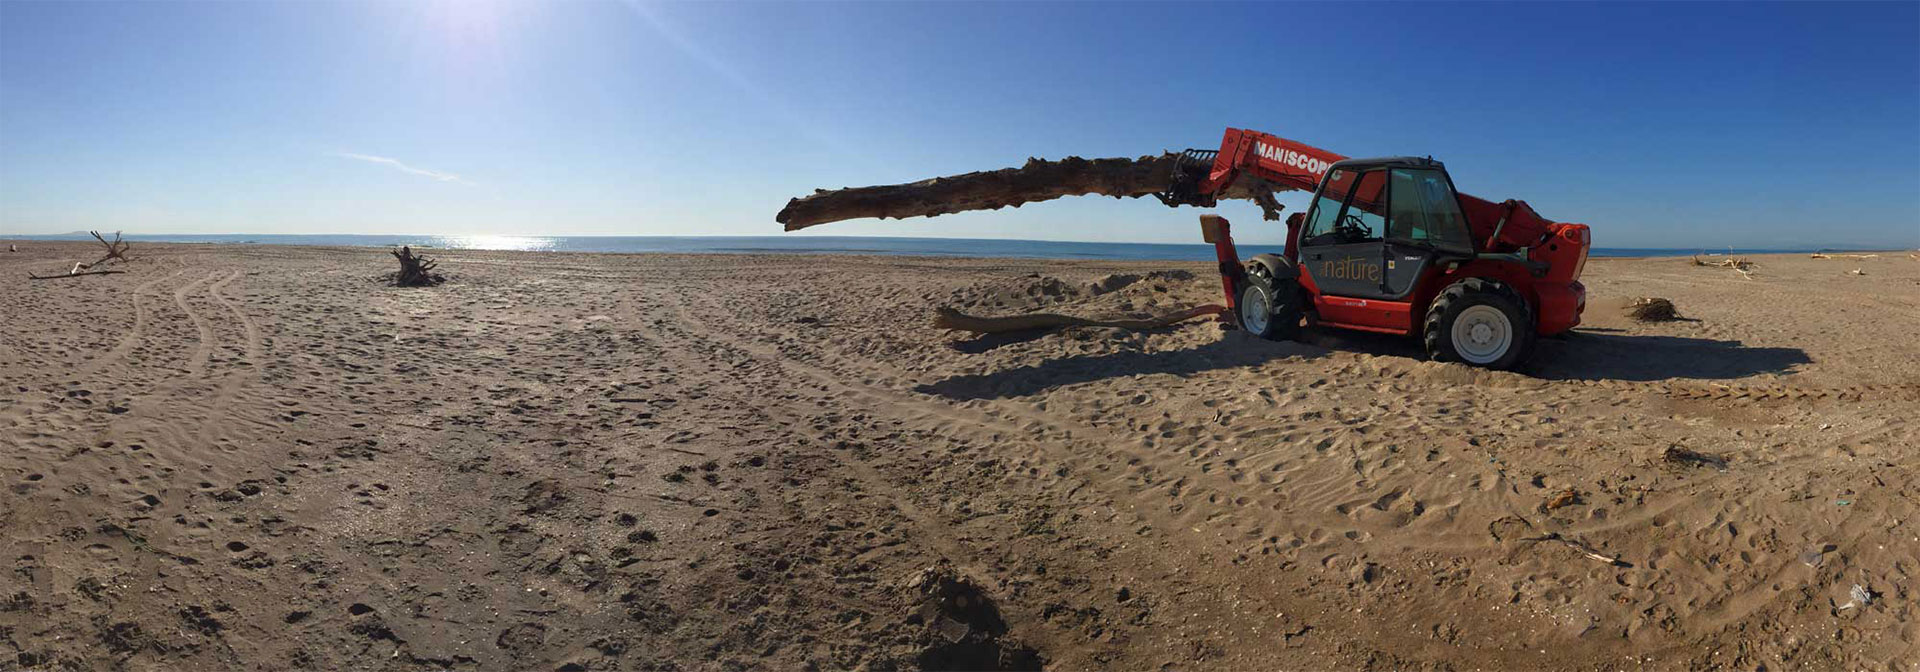 photo manitou sur plage